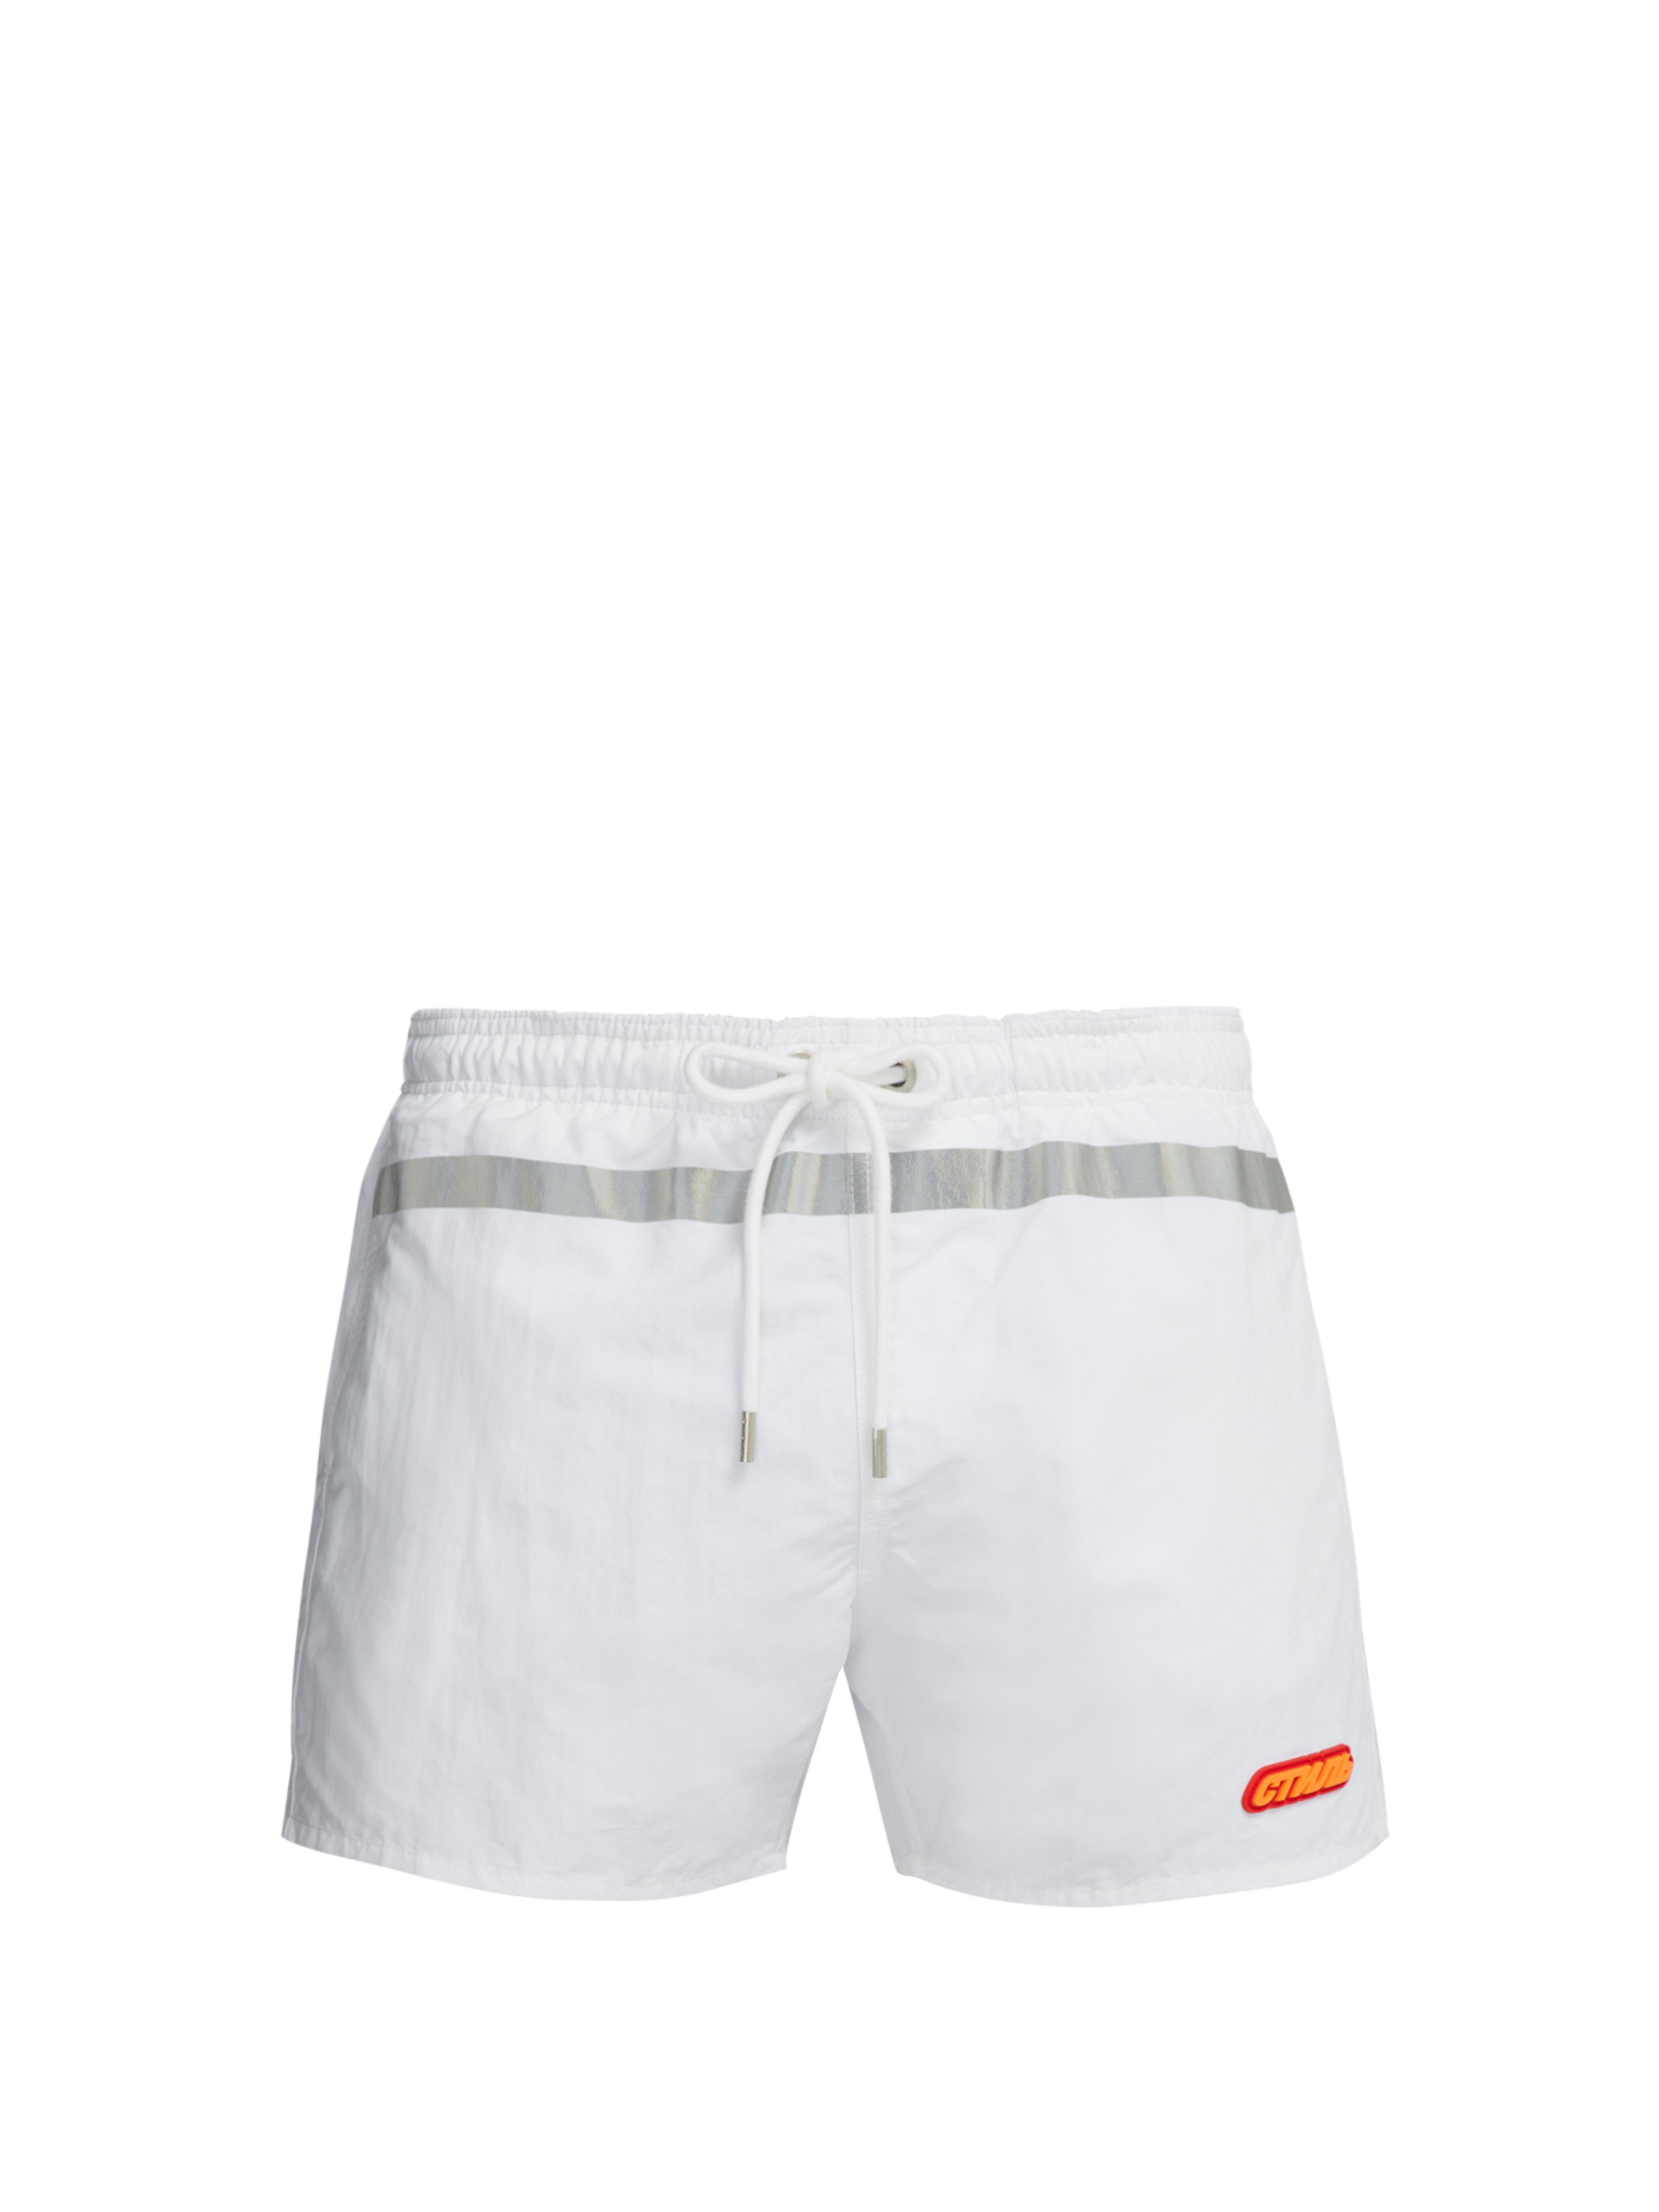 5ac03ac94f Heron Preston Drawstring Swim Shorts in White for Men - Lyst